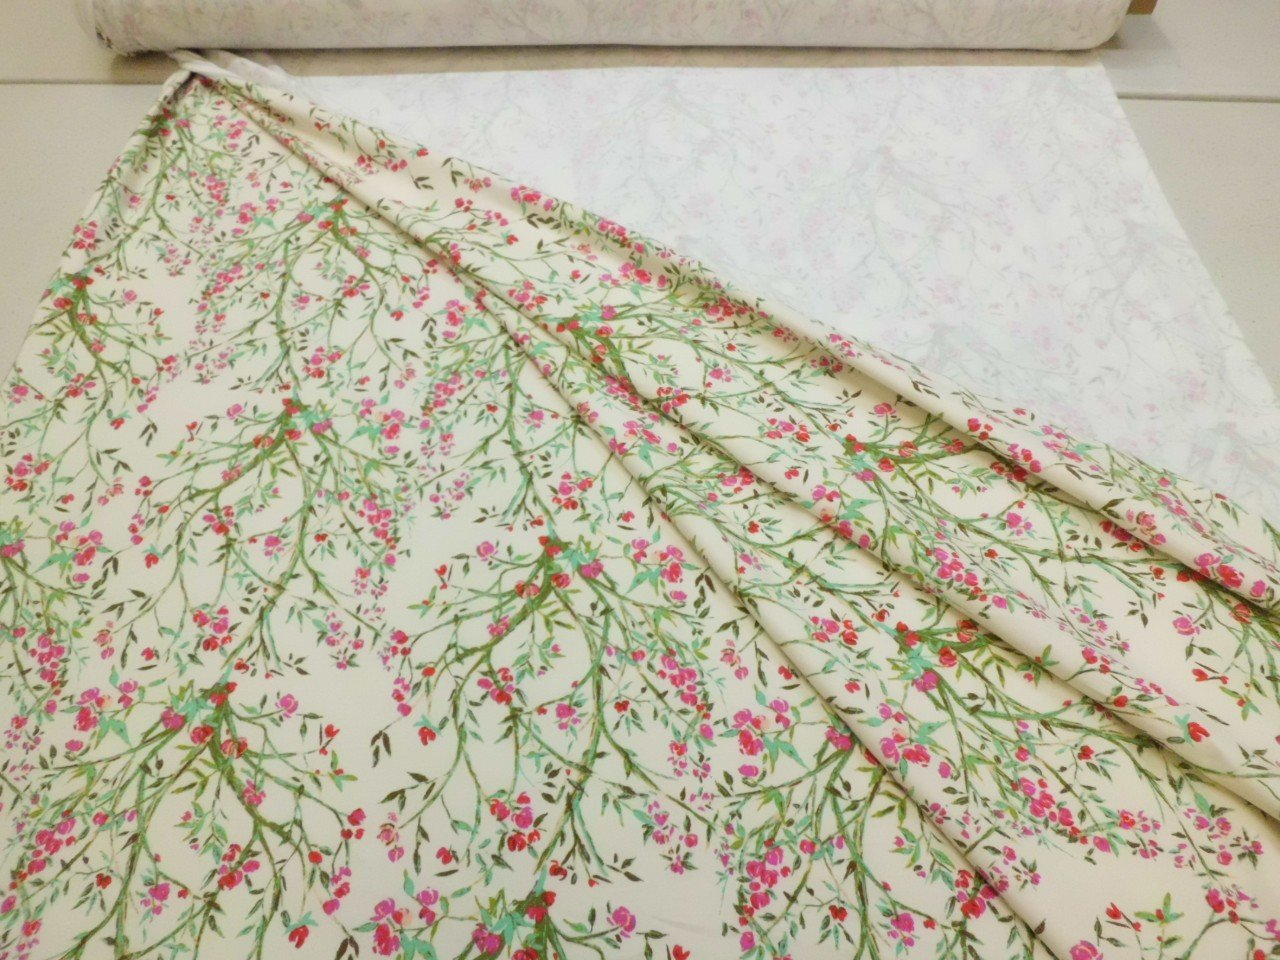 Art Gallery Cotton & Spandex Knit Floral Print in Cream